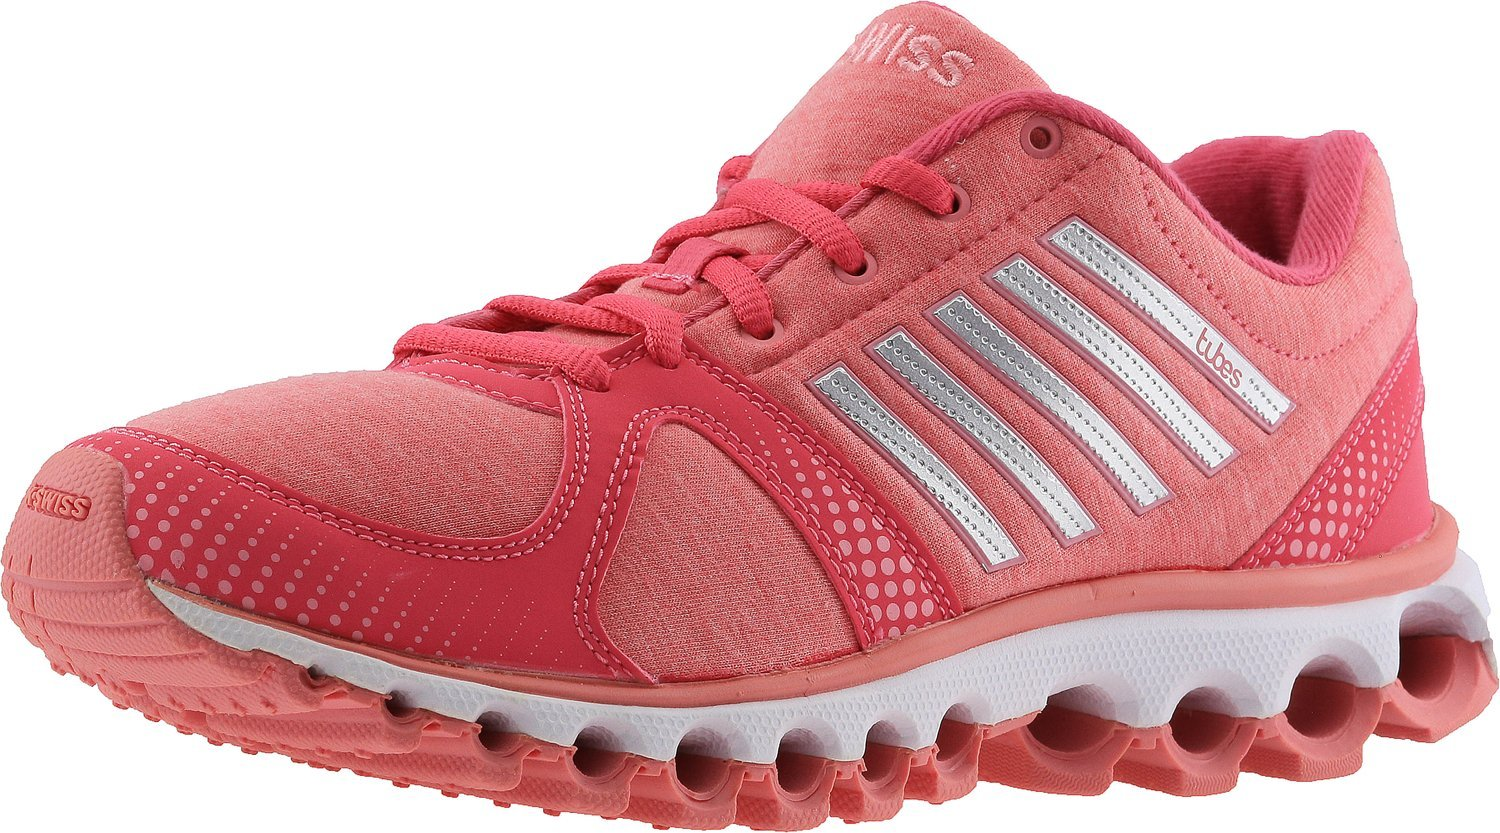 K-Swiss Women's X-160 Heather CMF Cross-Trainer Shoe, Honeysuckle/Geranium Pink, 8.5 M US